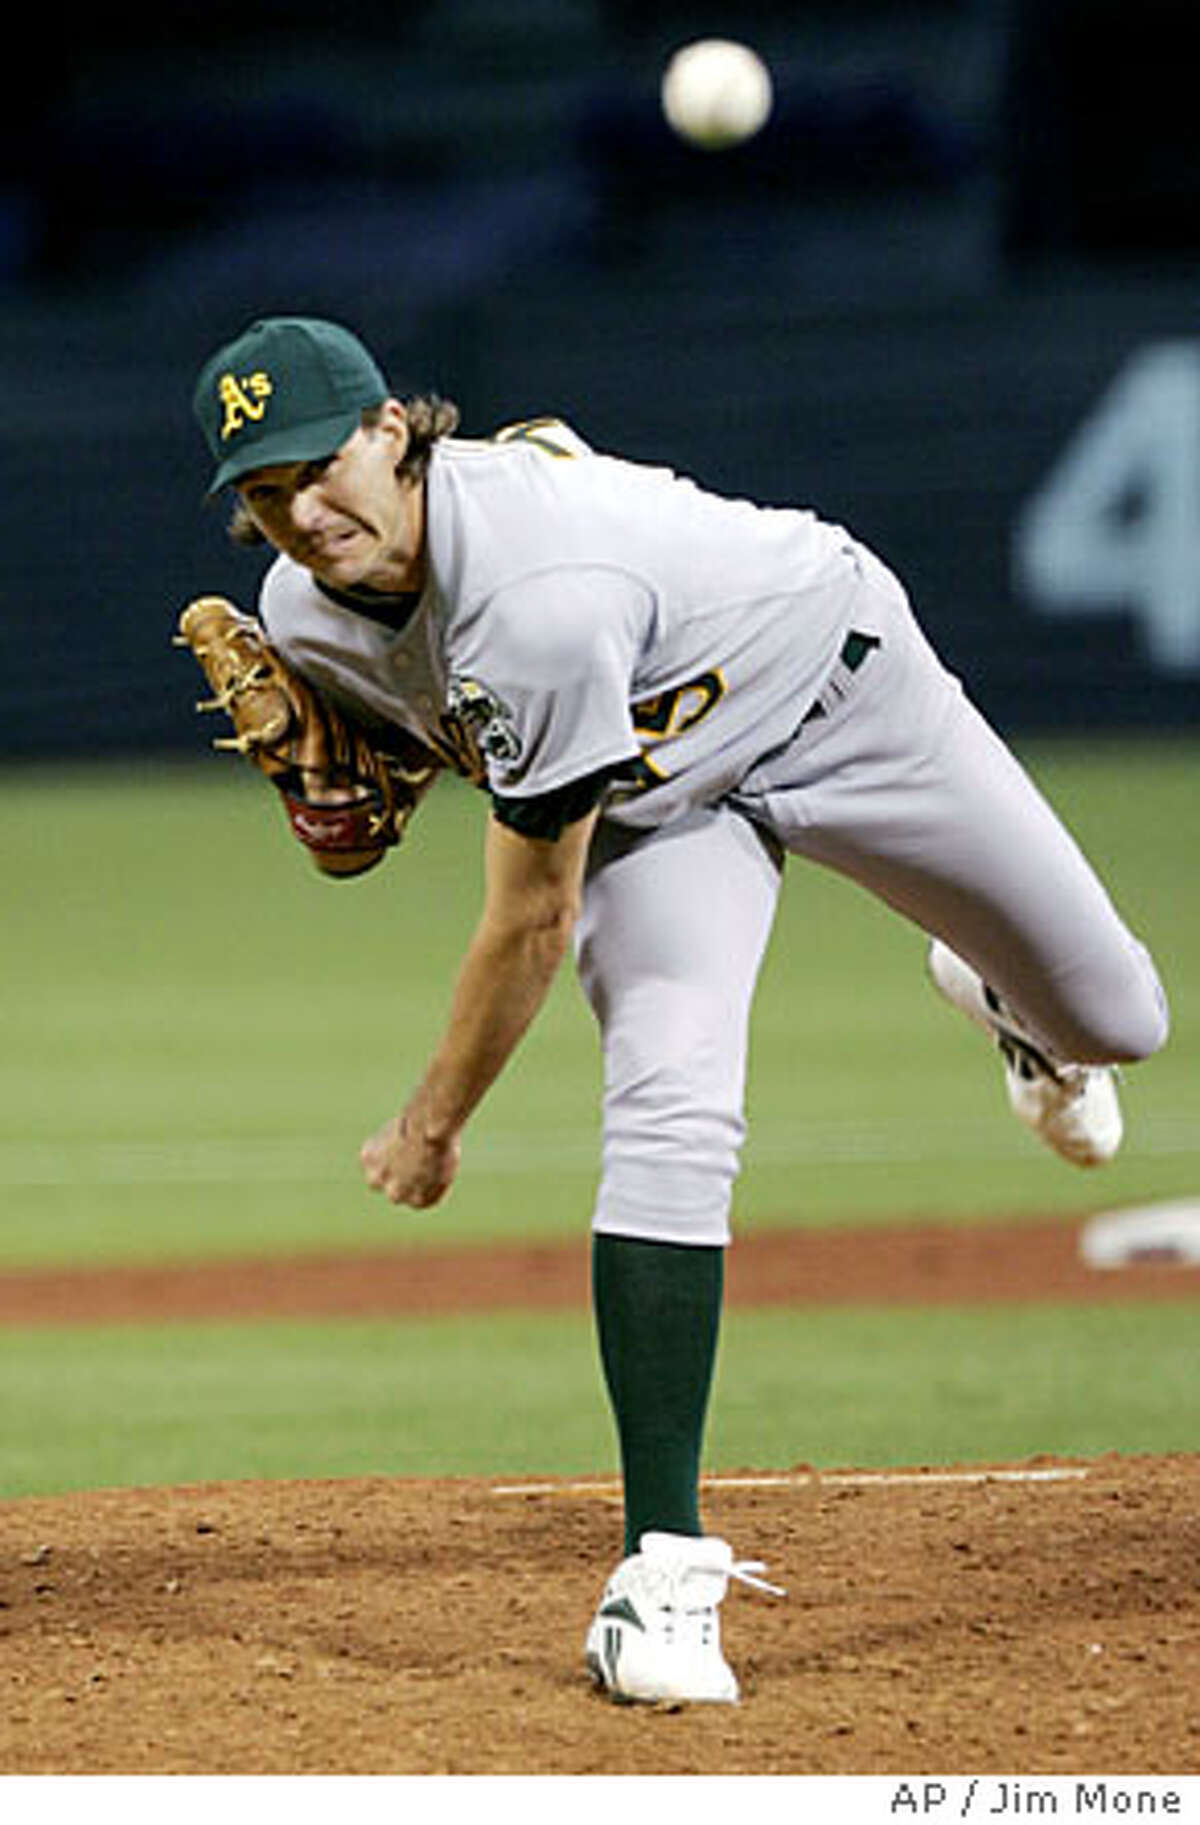 Oakland Athletics pitcher Barry Zito throws in the fouth inning on his way to picking up his 11th win as the Athletics beat the Twins 5-2 Thursday, Aug. 4, 2005 in Minneapolis. Zito gave up two runs on four hits in his eight inning appearance. (AP Photo/Jim Mone)